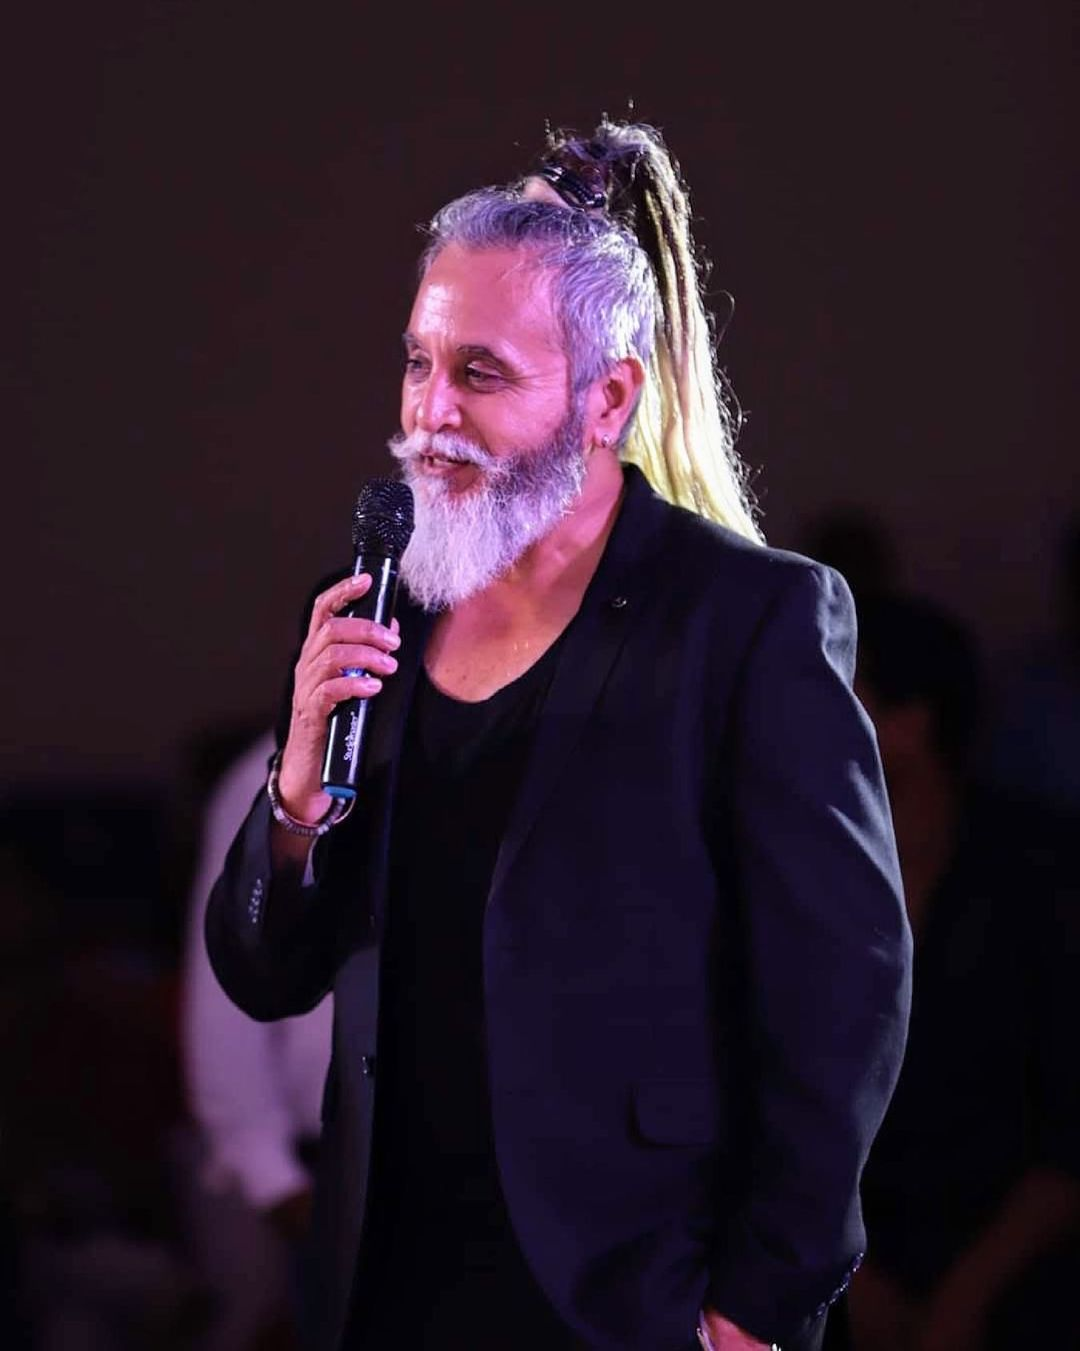 dinesh mohan started modelling at 60